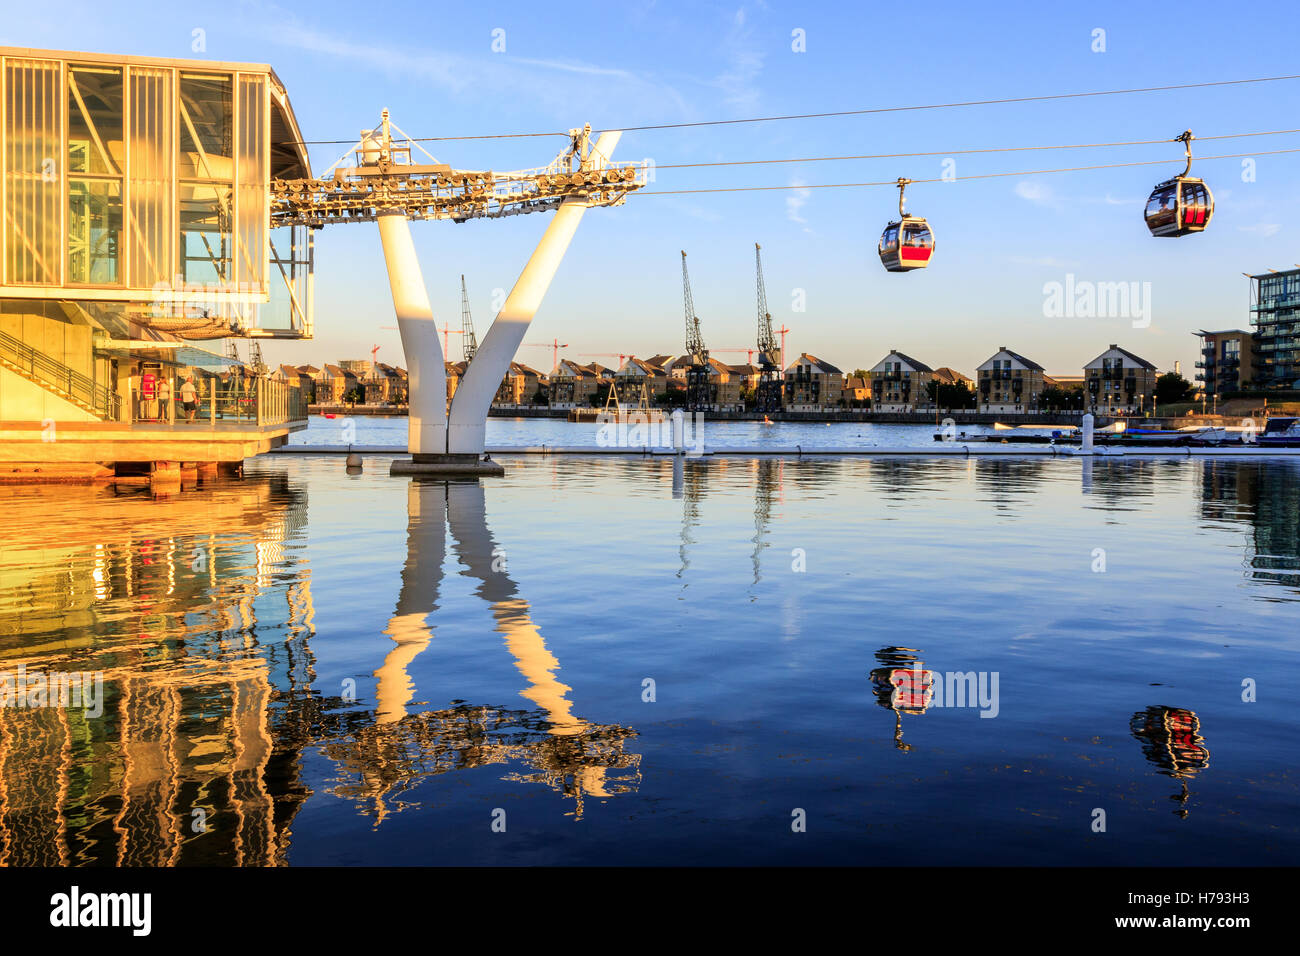 The Emirate Air Line or Thames cable car in London at sunset - Stock Image